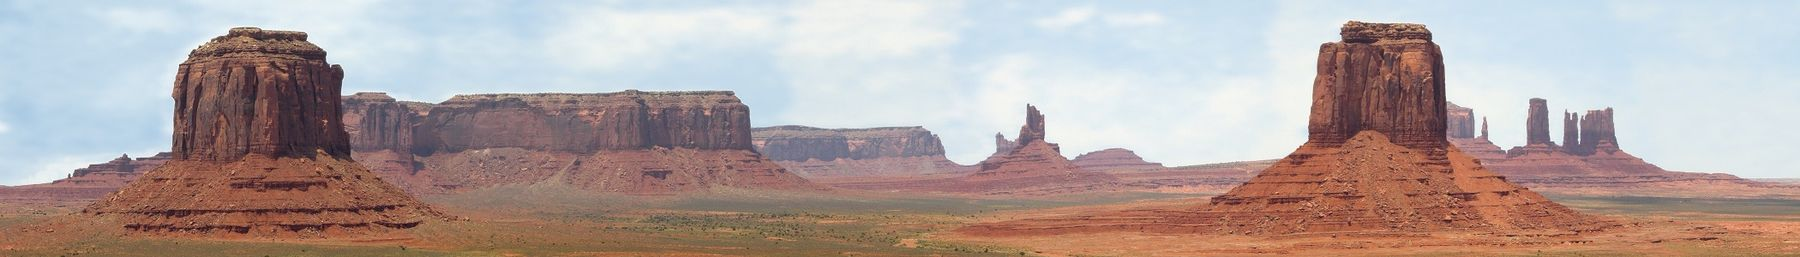 Monument Valley wikivoyage banner.jpg